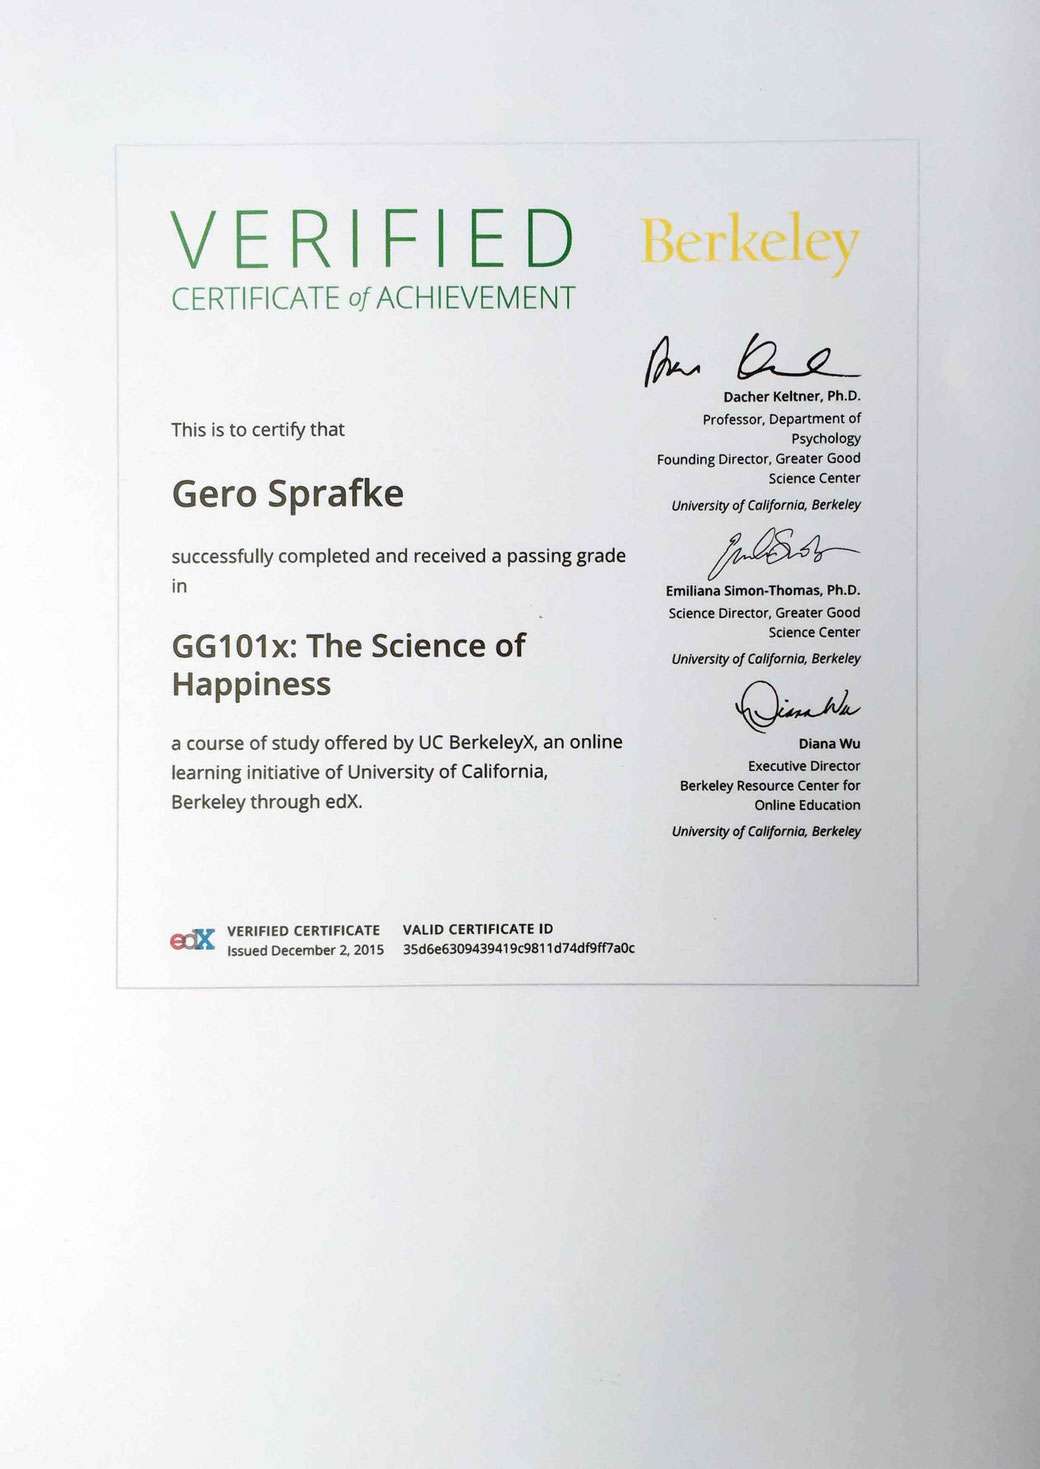 University of California | The Science of Happiness - Certificate of Achievement